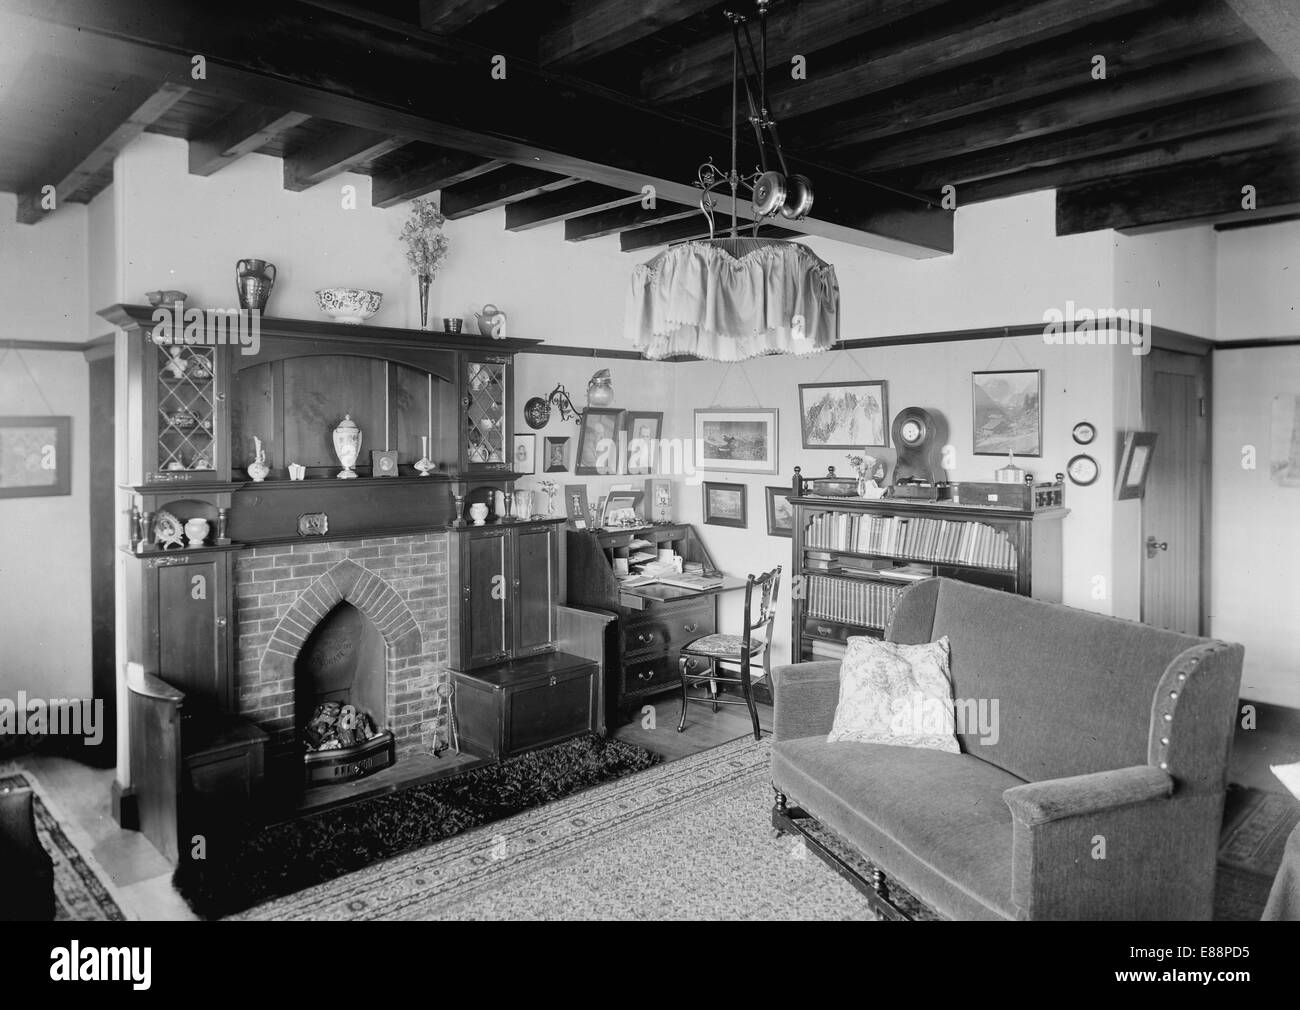 edwardian house interior. Interior of an Edwardian house in 1914  Photograph taken Ilkley Yorkshire England